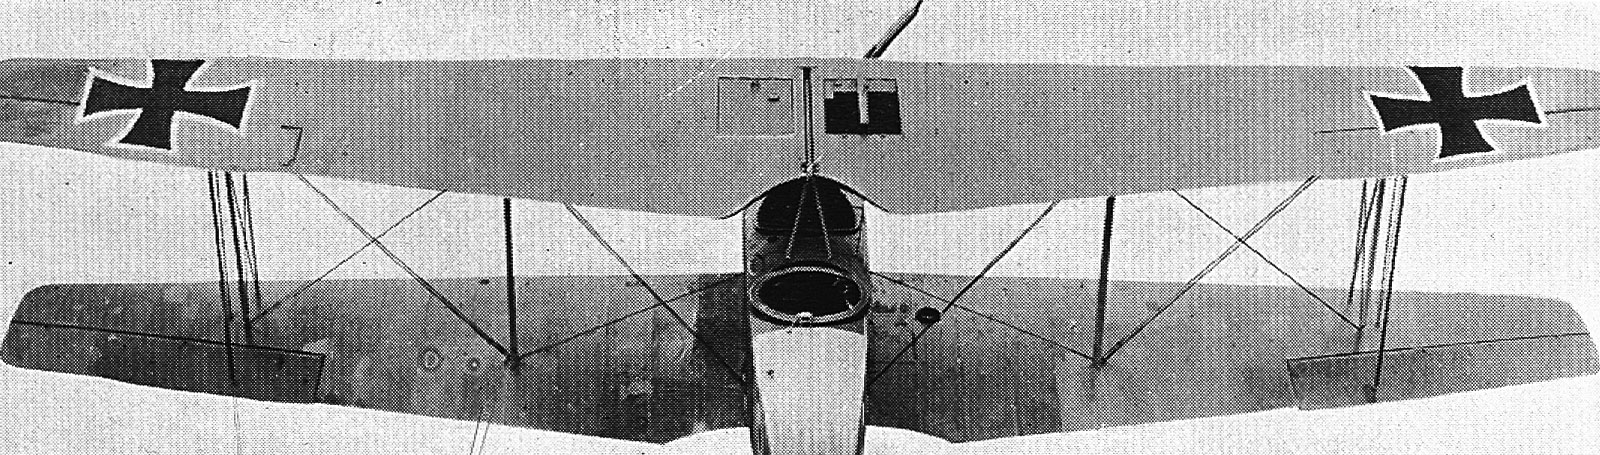 Photograph of wings of German aircraft